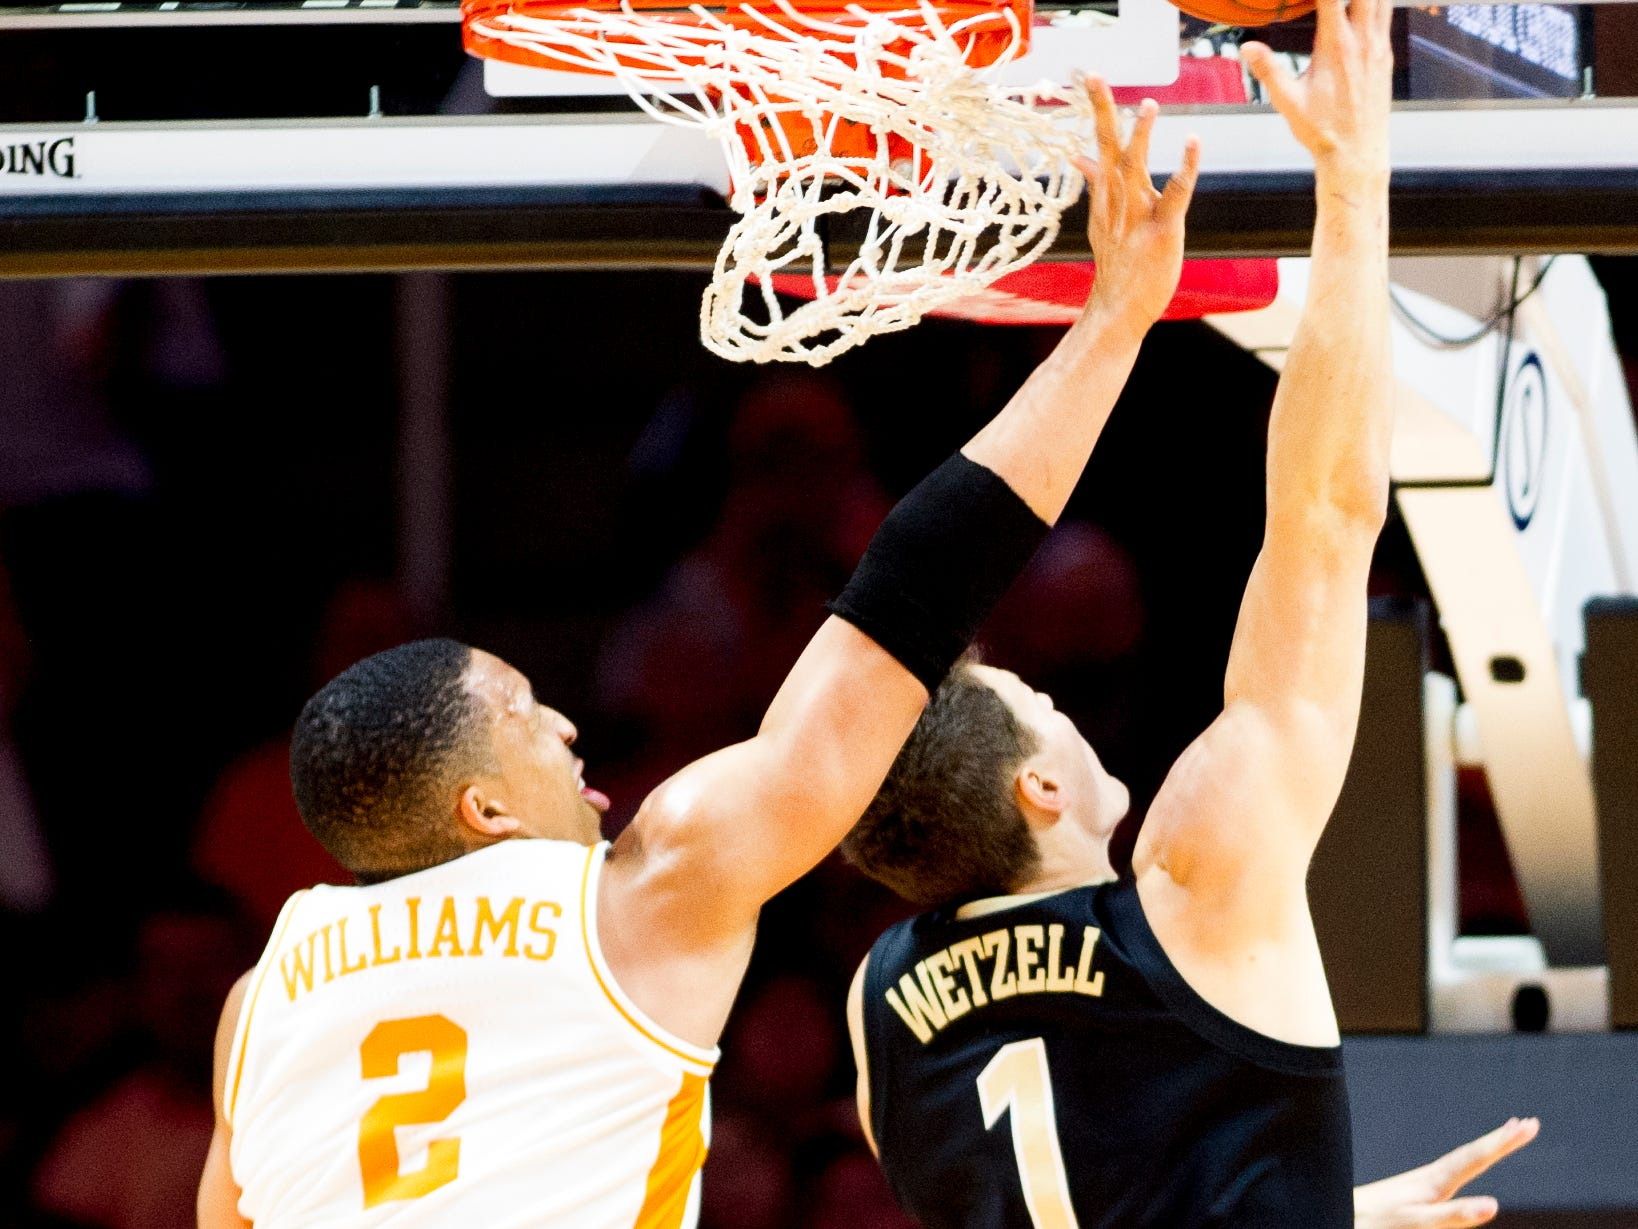 Tennessee forward Grant Williams (2) blocks a shot by Vanderbilt forward/center Yanni Wetzell (1) as Vanderbilt forward/center Simisola Shittu (11) watches during a game between Tennessee and Vanderbilt at Thompson-Boling Arena in Knoxville, Tennessee on Tuesday, February 19, 2019.